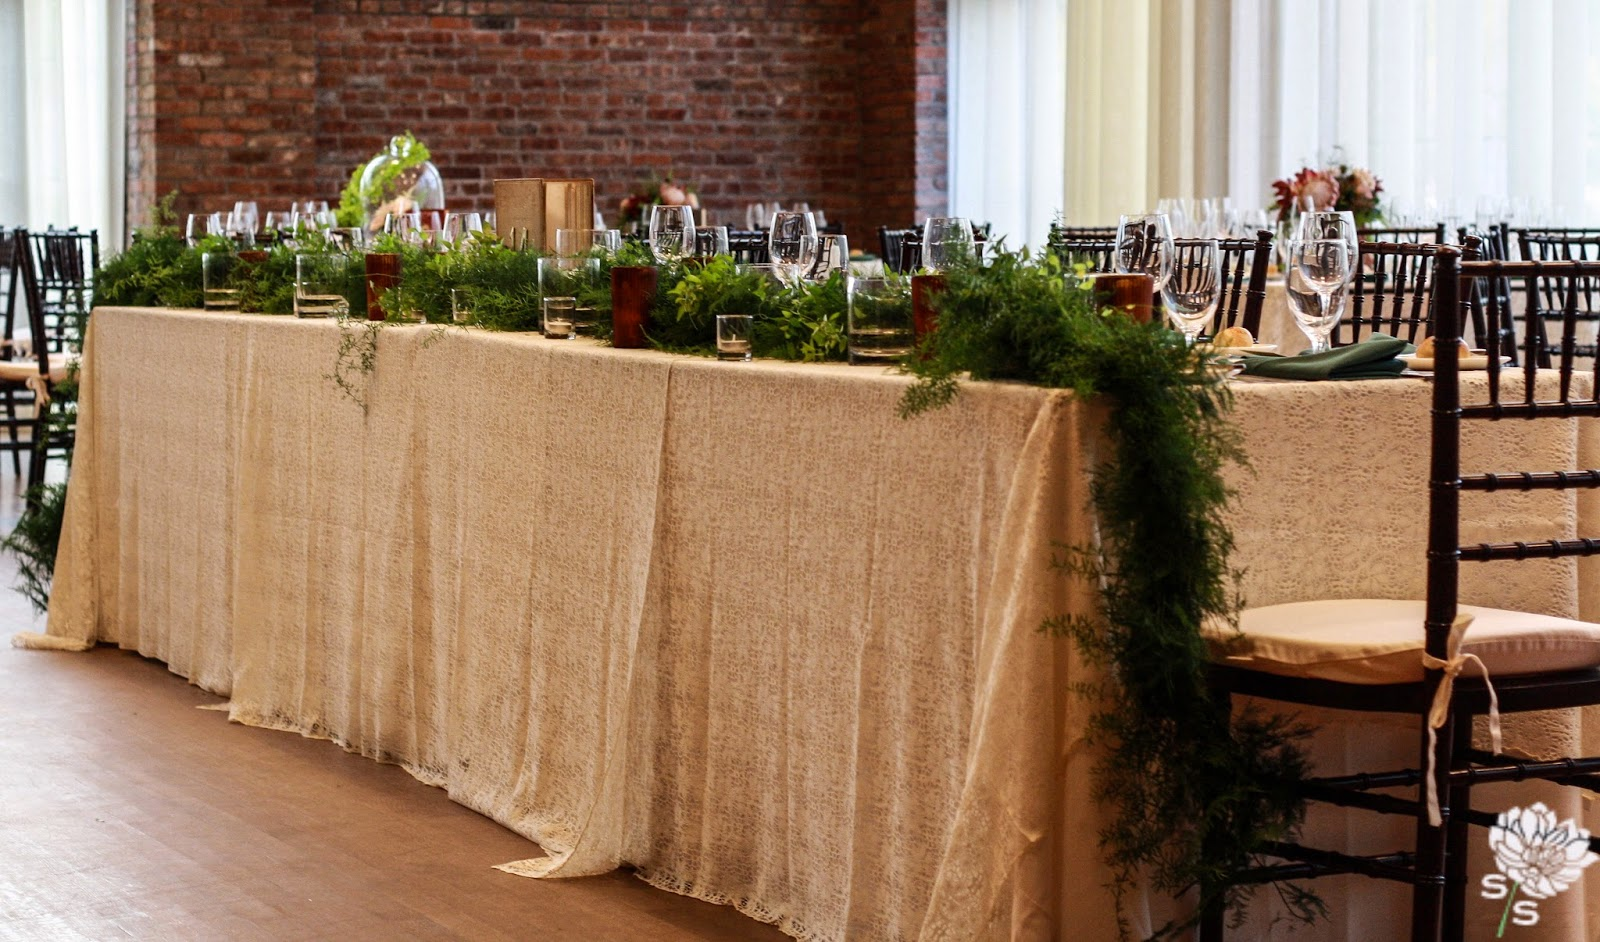 The Roundhouse Wedding - Beacon, NY - Hudson Valley Wedding - Head Table Garland - Wedding Flowers - Splendid Stems Floral Designs